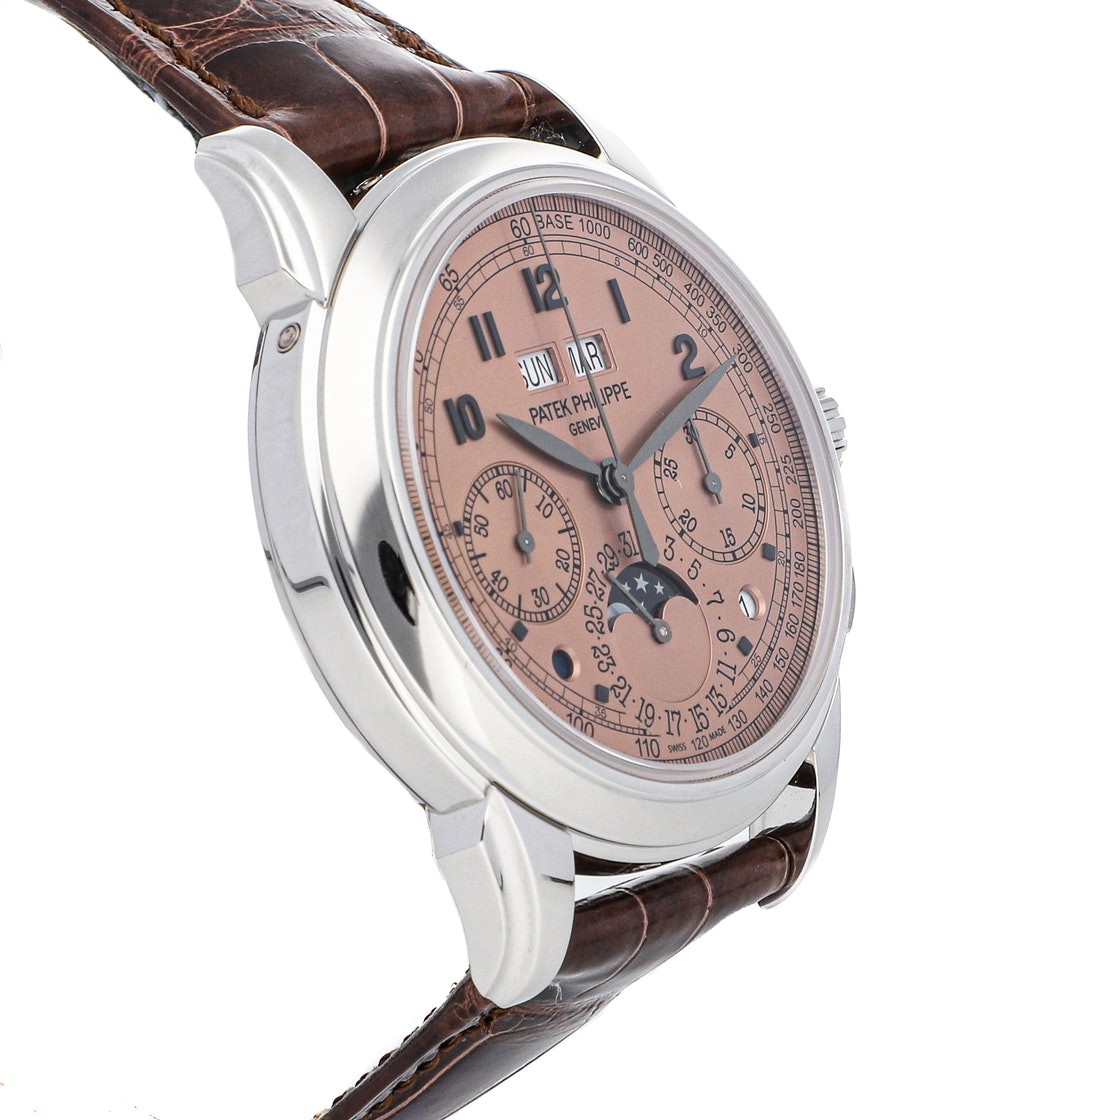 Patek Philippe Grand Complications Perpetual Calendar Chronograph 5270P-001